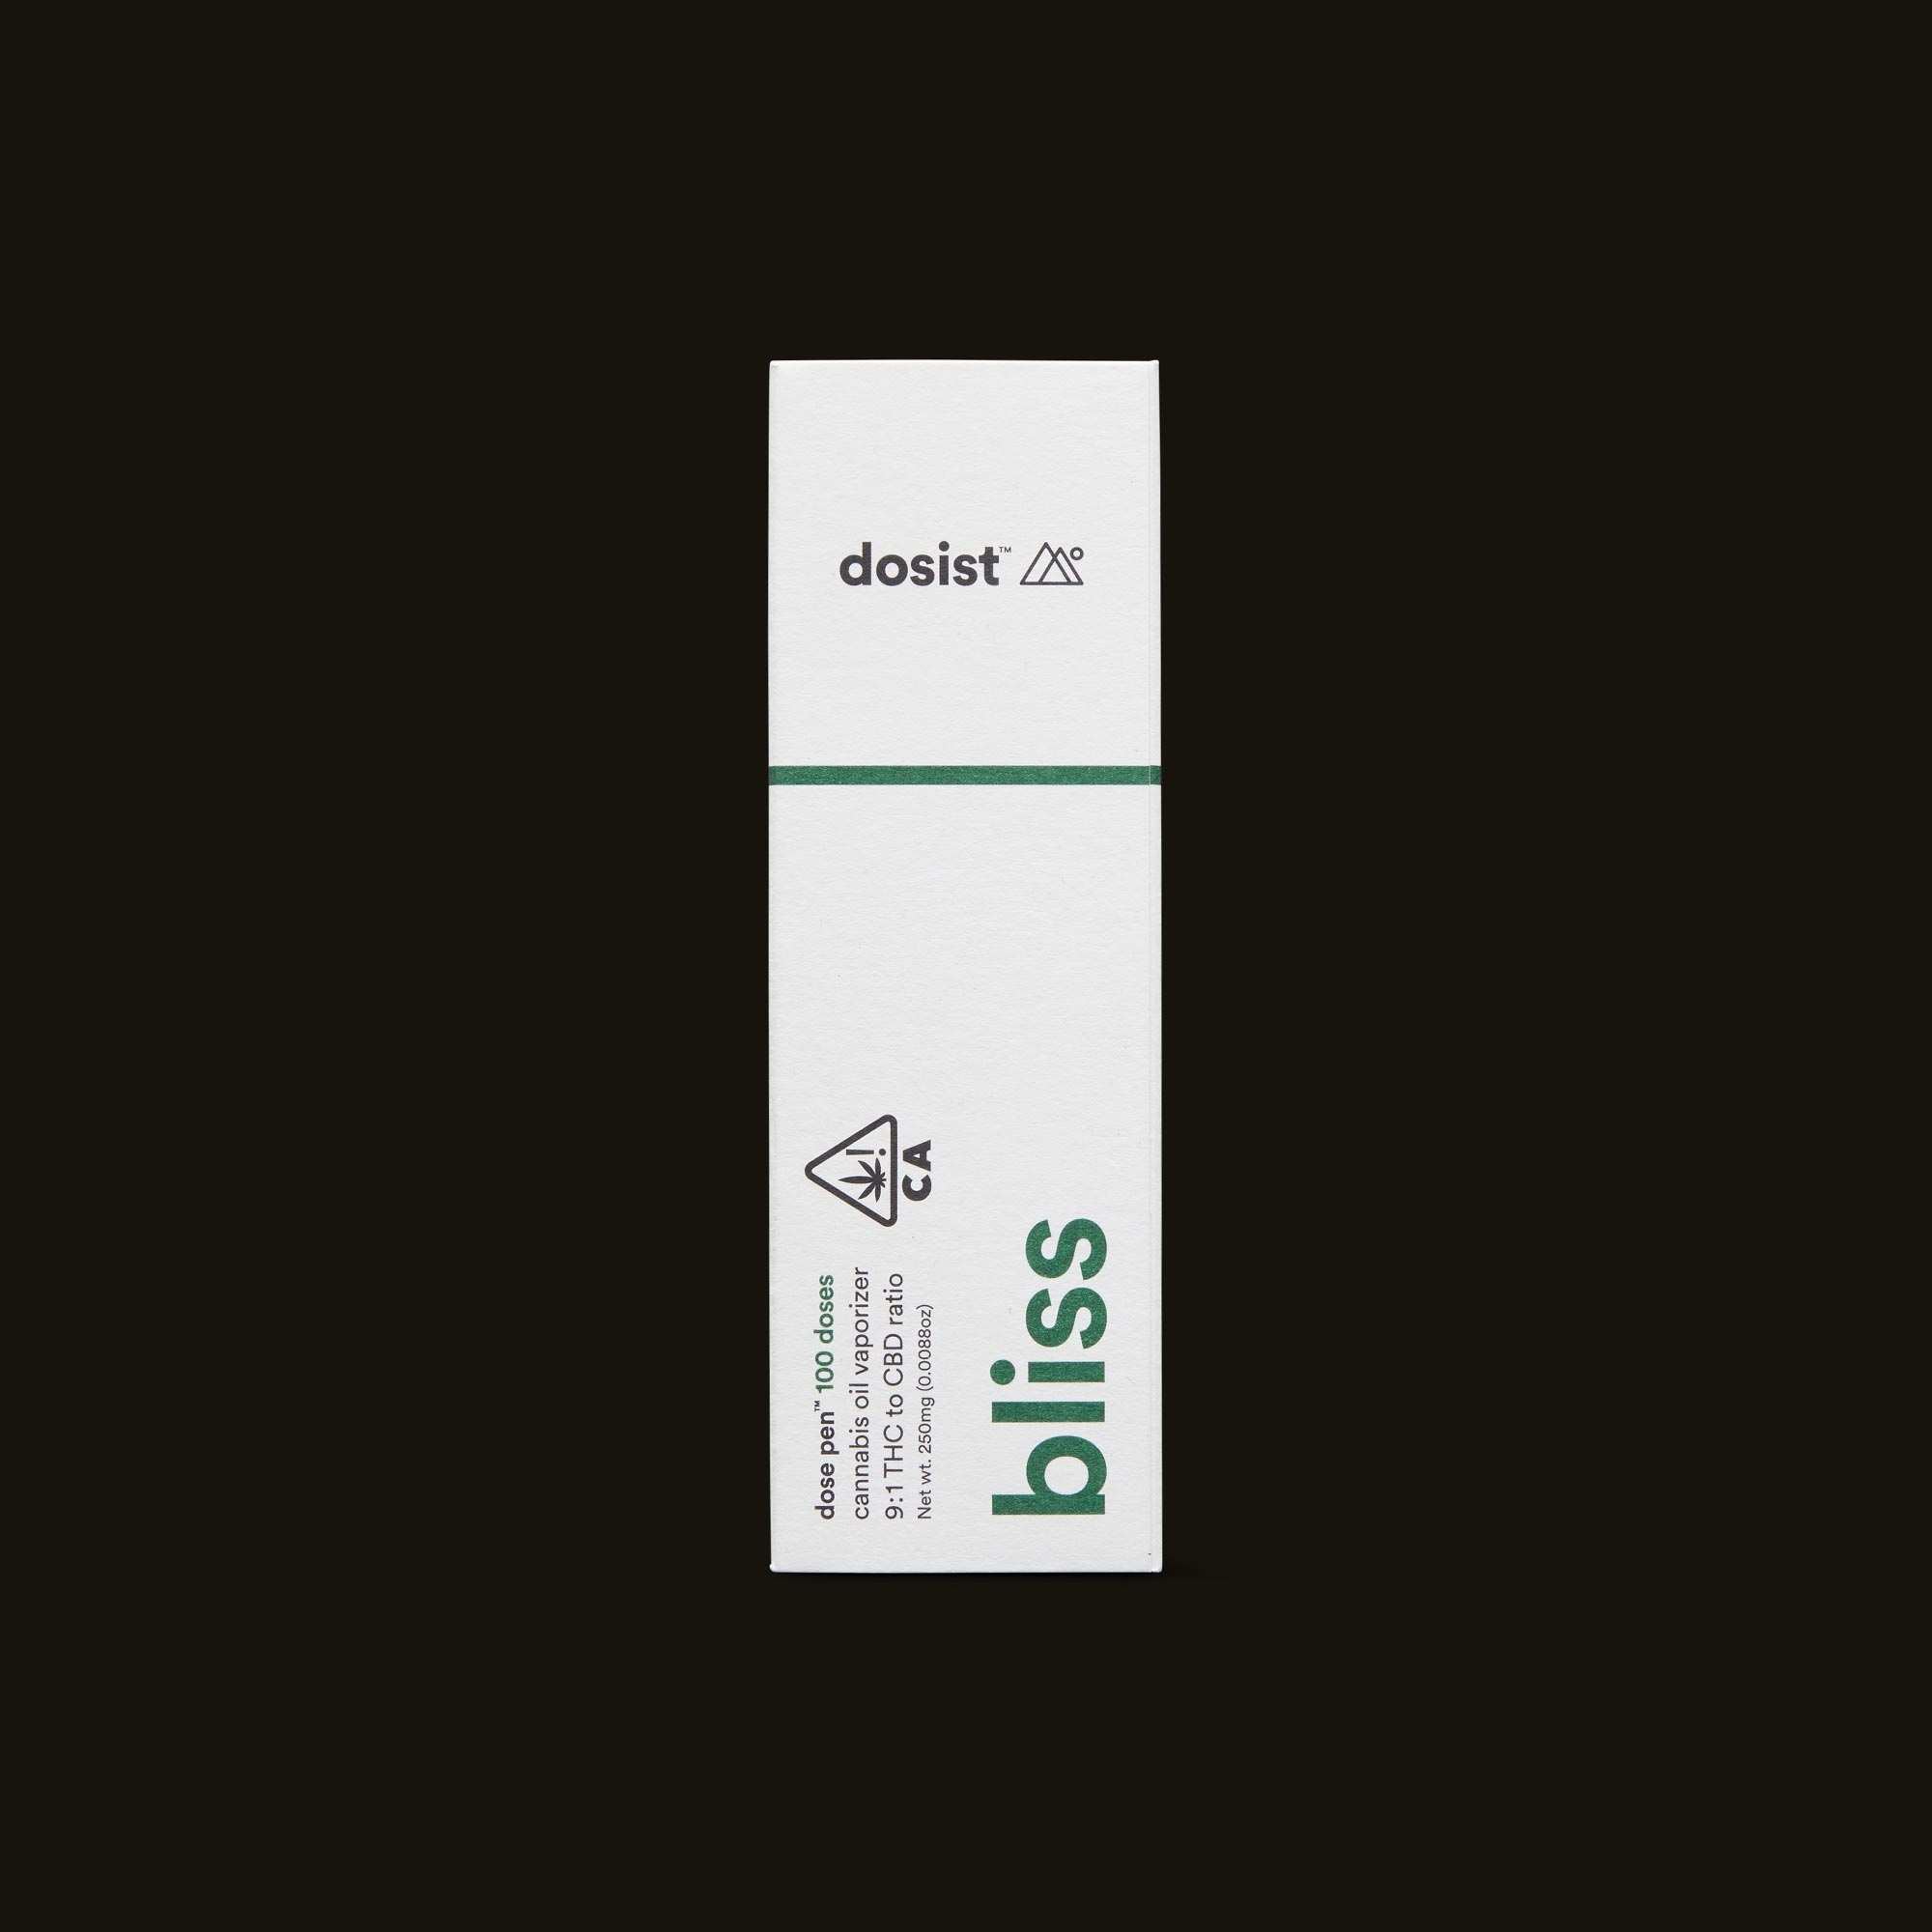 dosist bliss dose pen front box